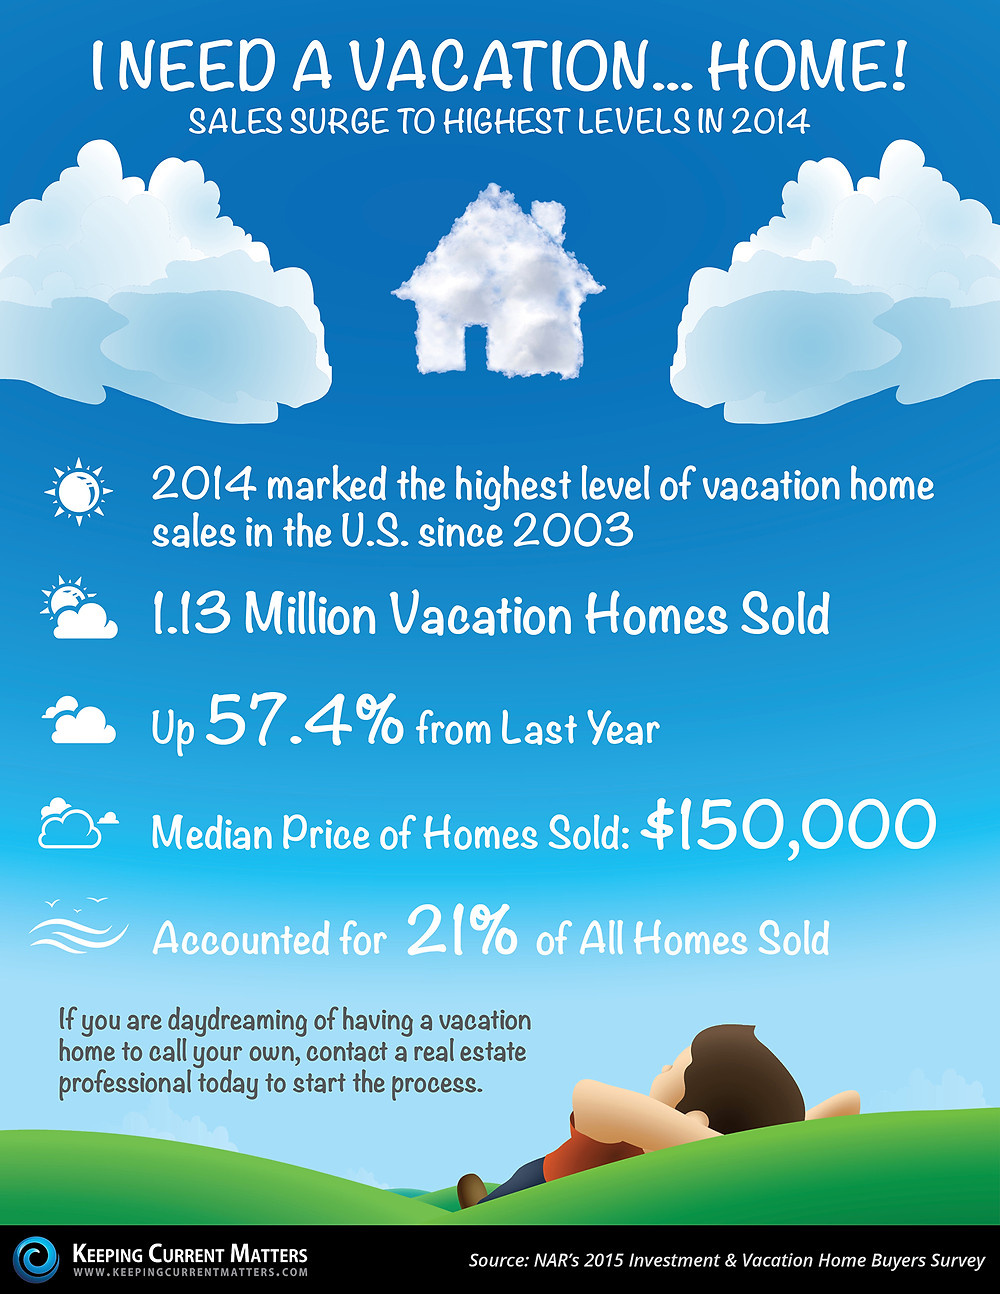 I Need A VACATION... Home!! [INFOGRAPHIC] | Keeping Current Matters